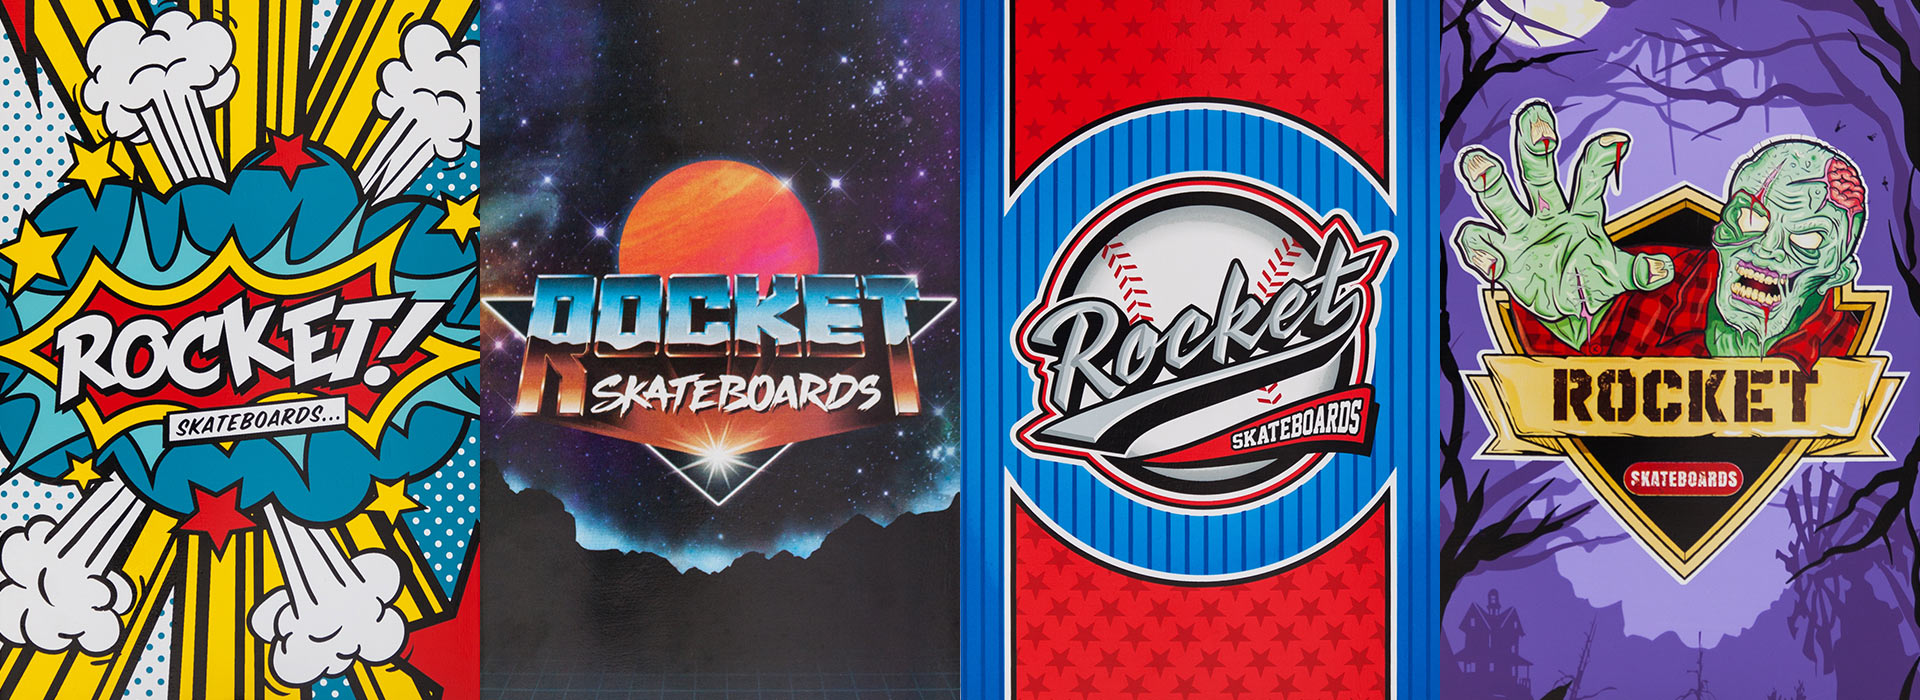 Rocket complete skateboard - Logo Series